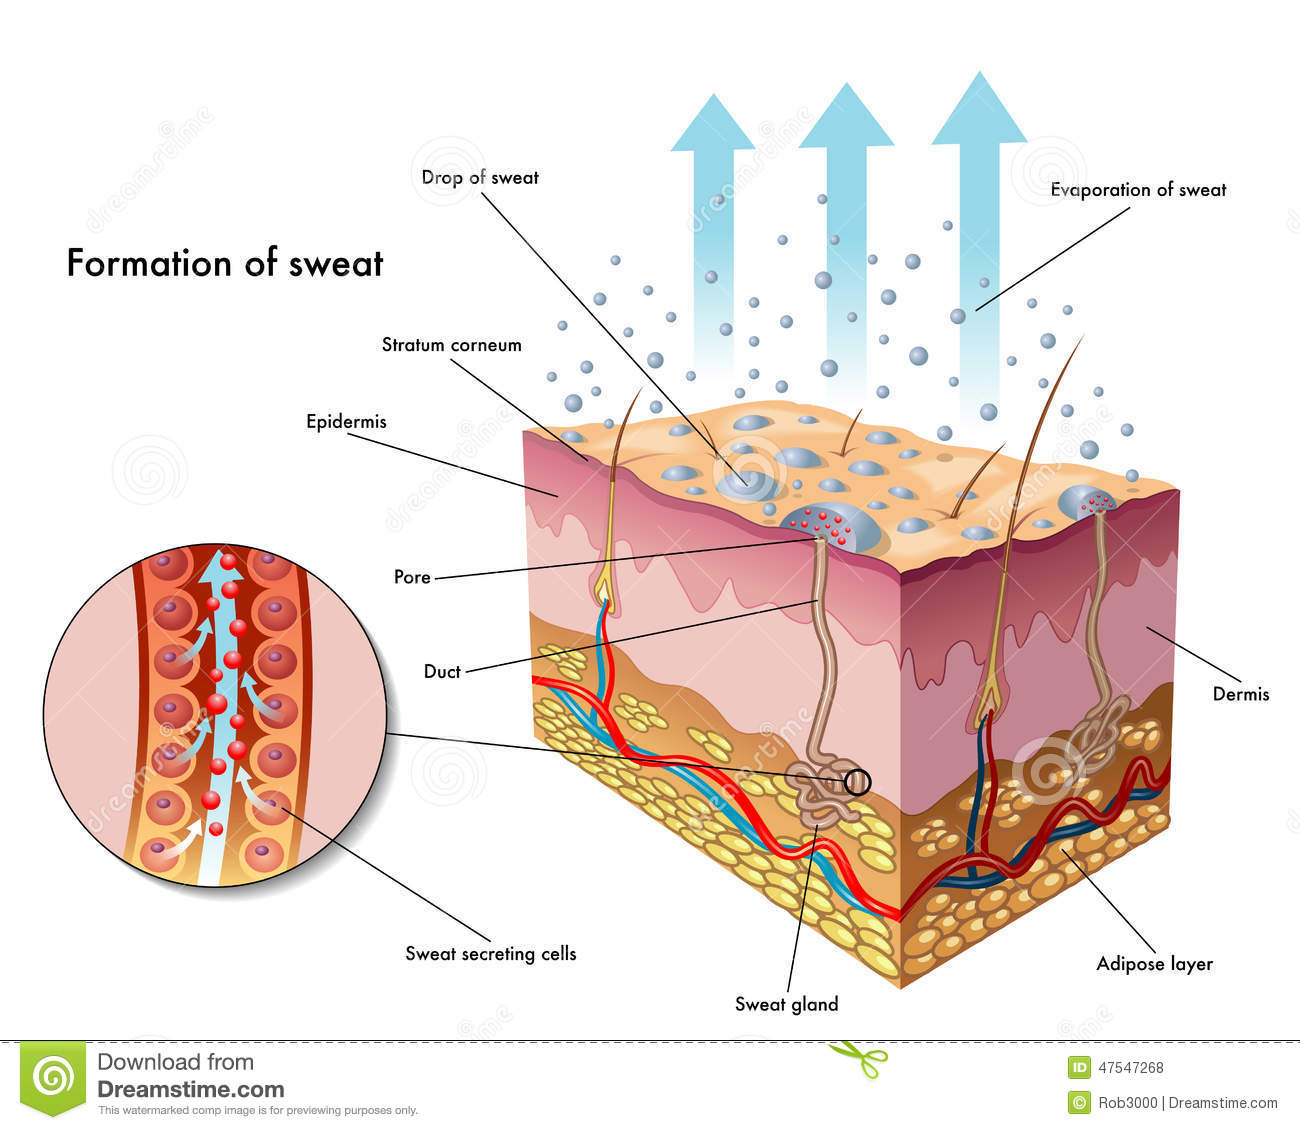 Direction selective ganglion cells further Facial Nerve Anatomy For Medical Students And Ent Postgraduates further Cone Pathways Through The Retina as well 10541805 furthermore Lymphatic Drainage System Diagram. on nerve circuit